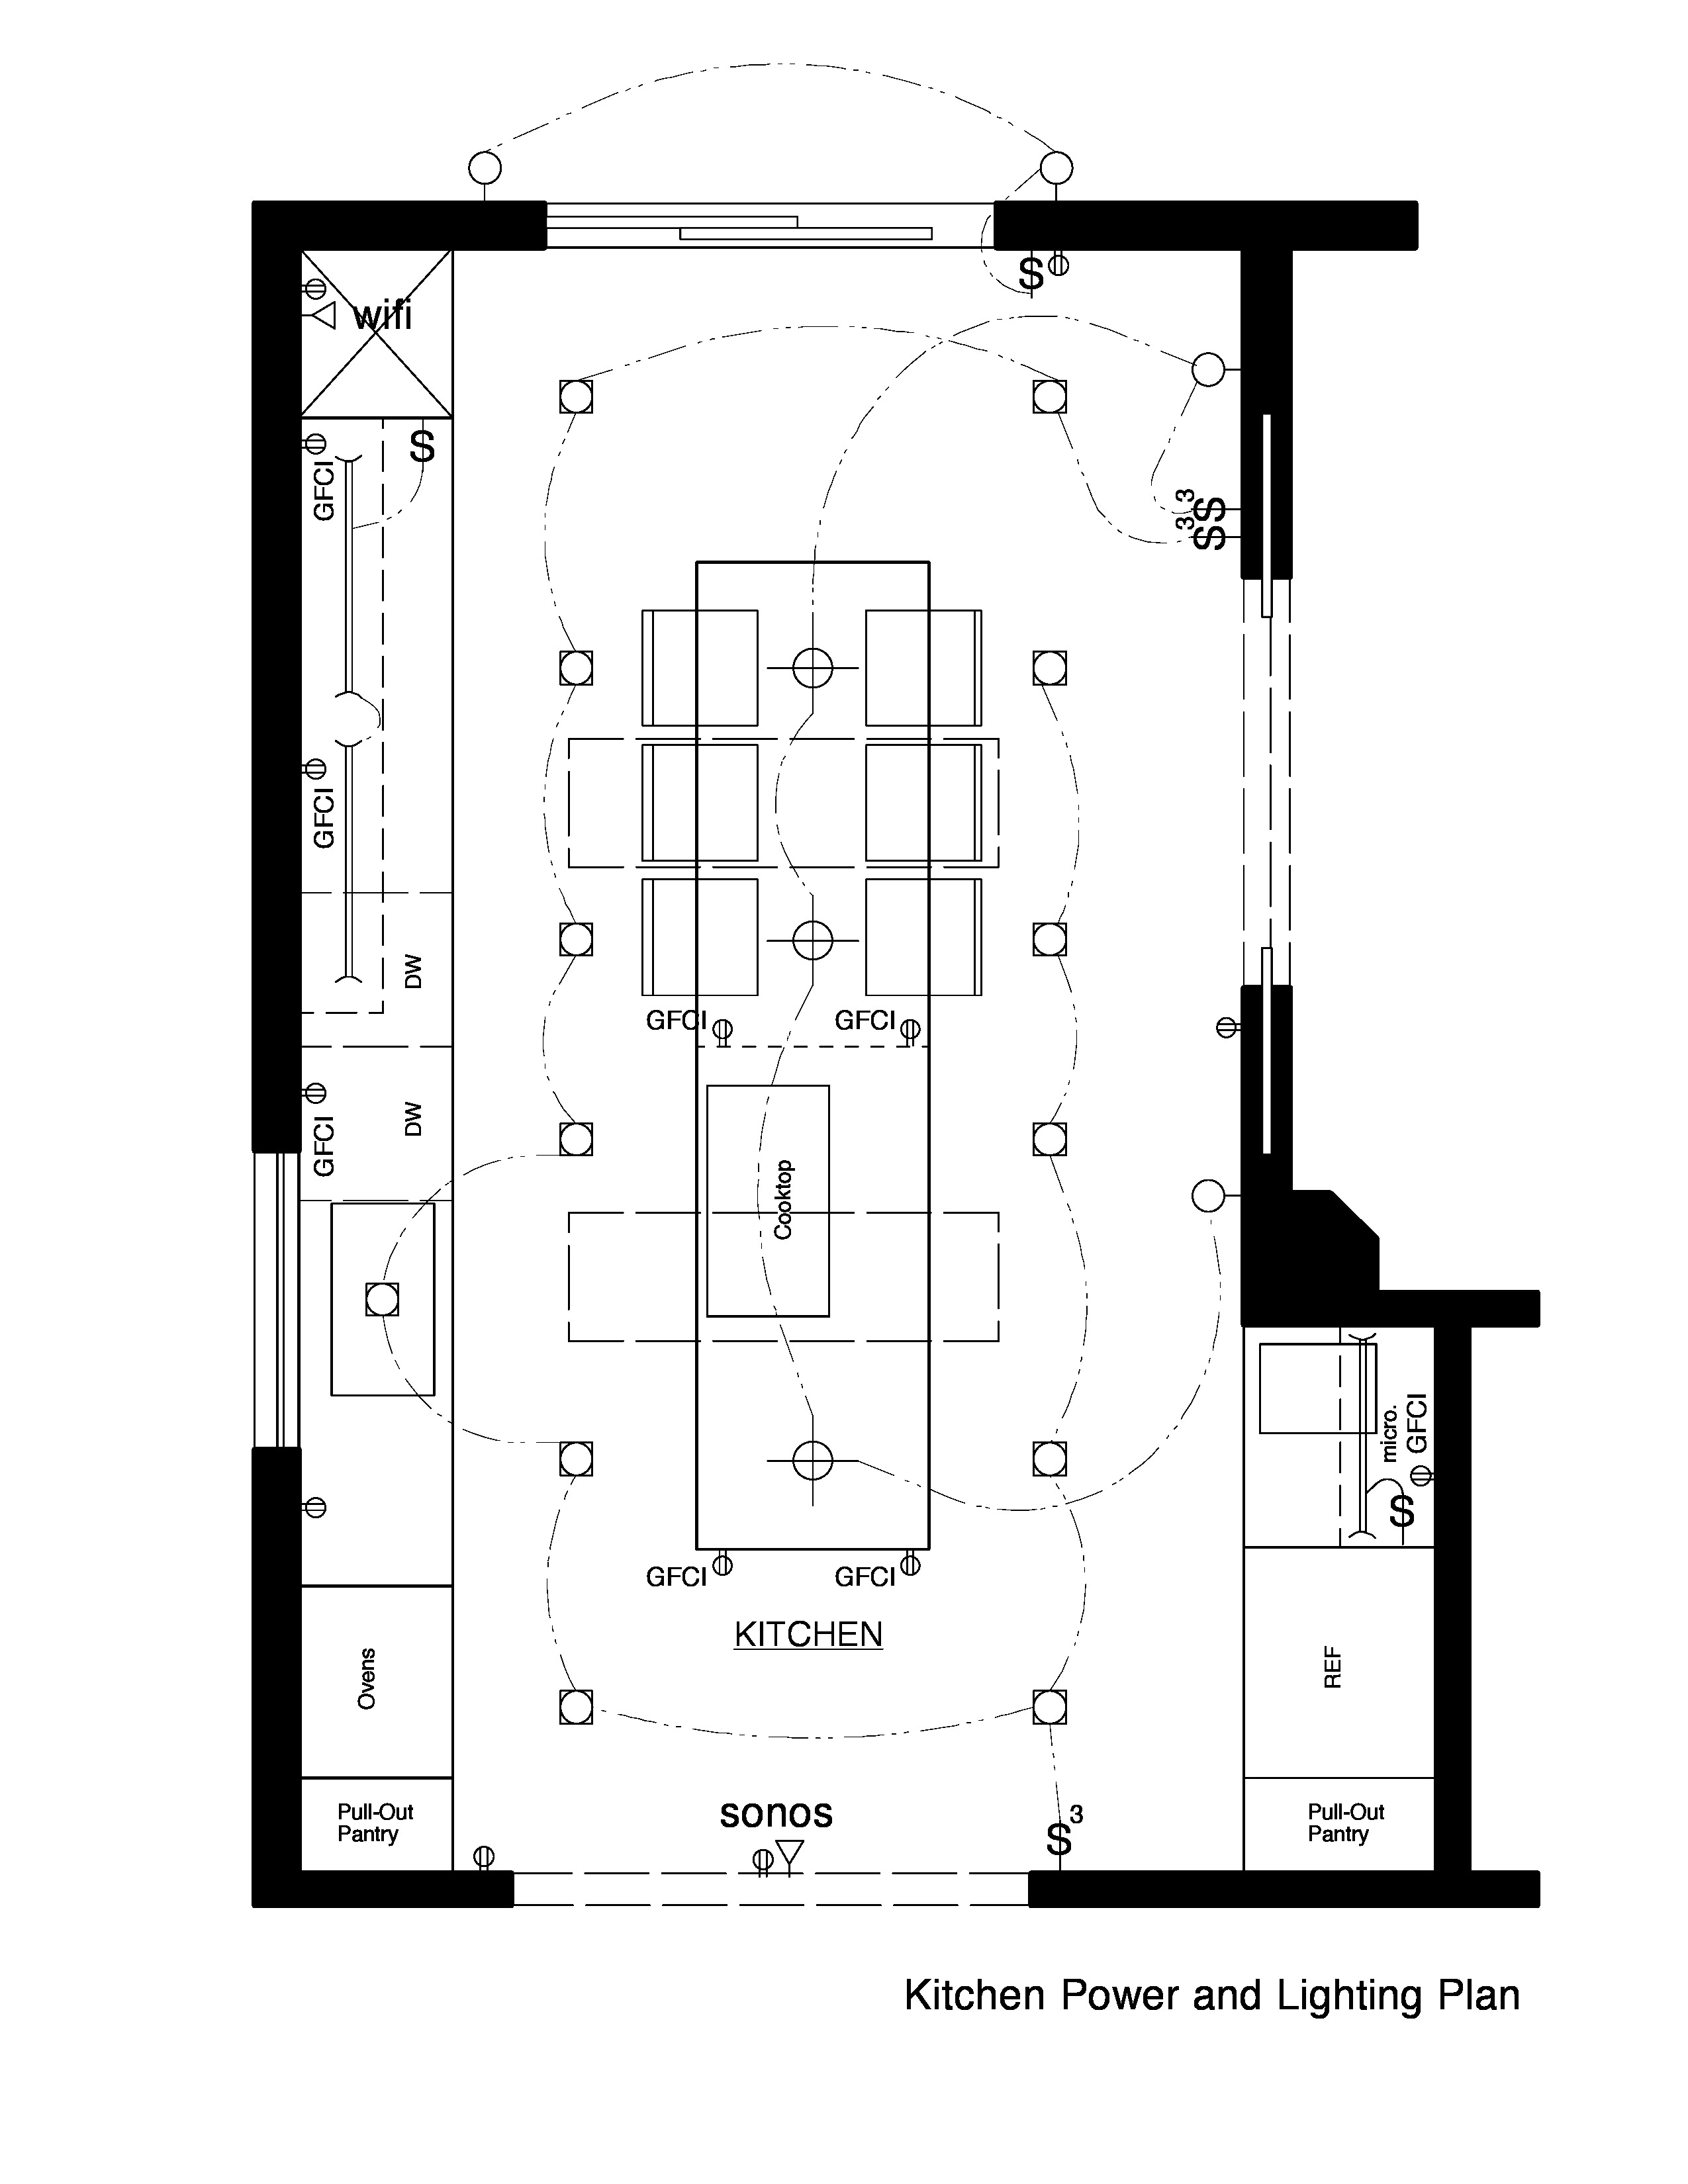 lighting architecture diagram hunter ceiling fan wiring seven rules for your home 3 stick to a grid layout alden miller interiors